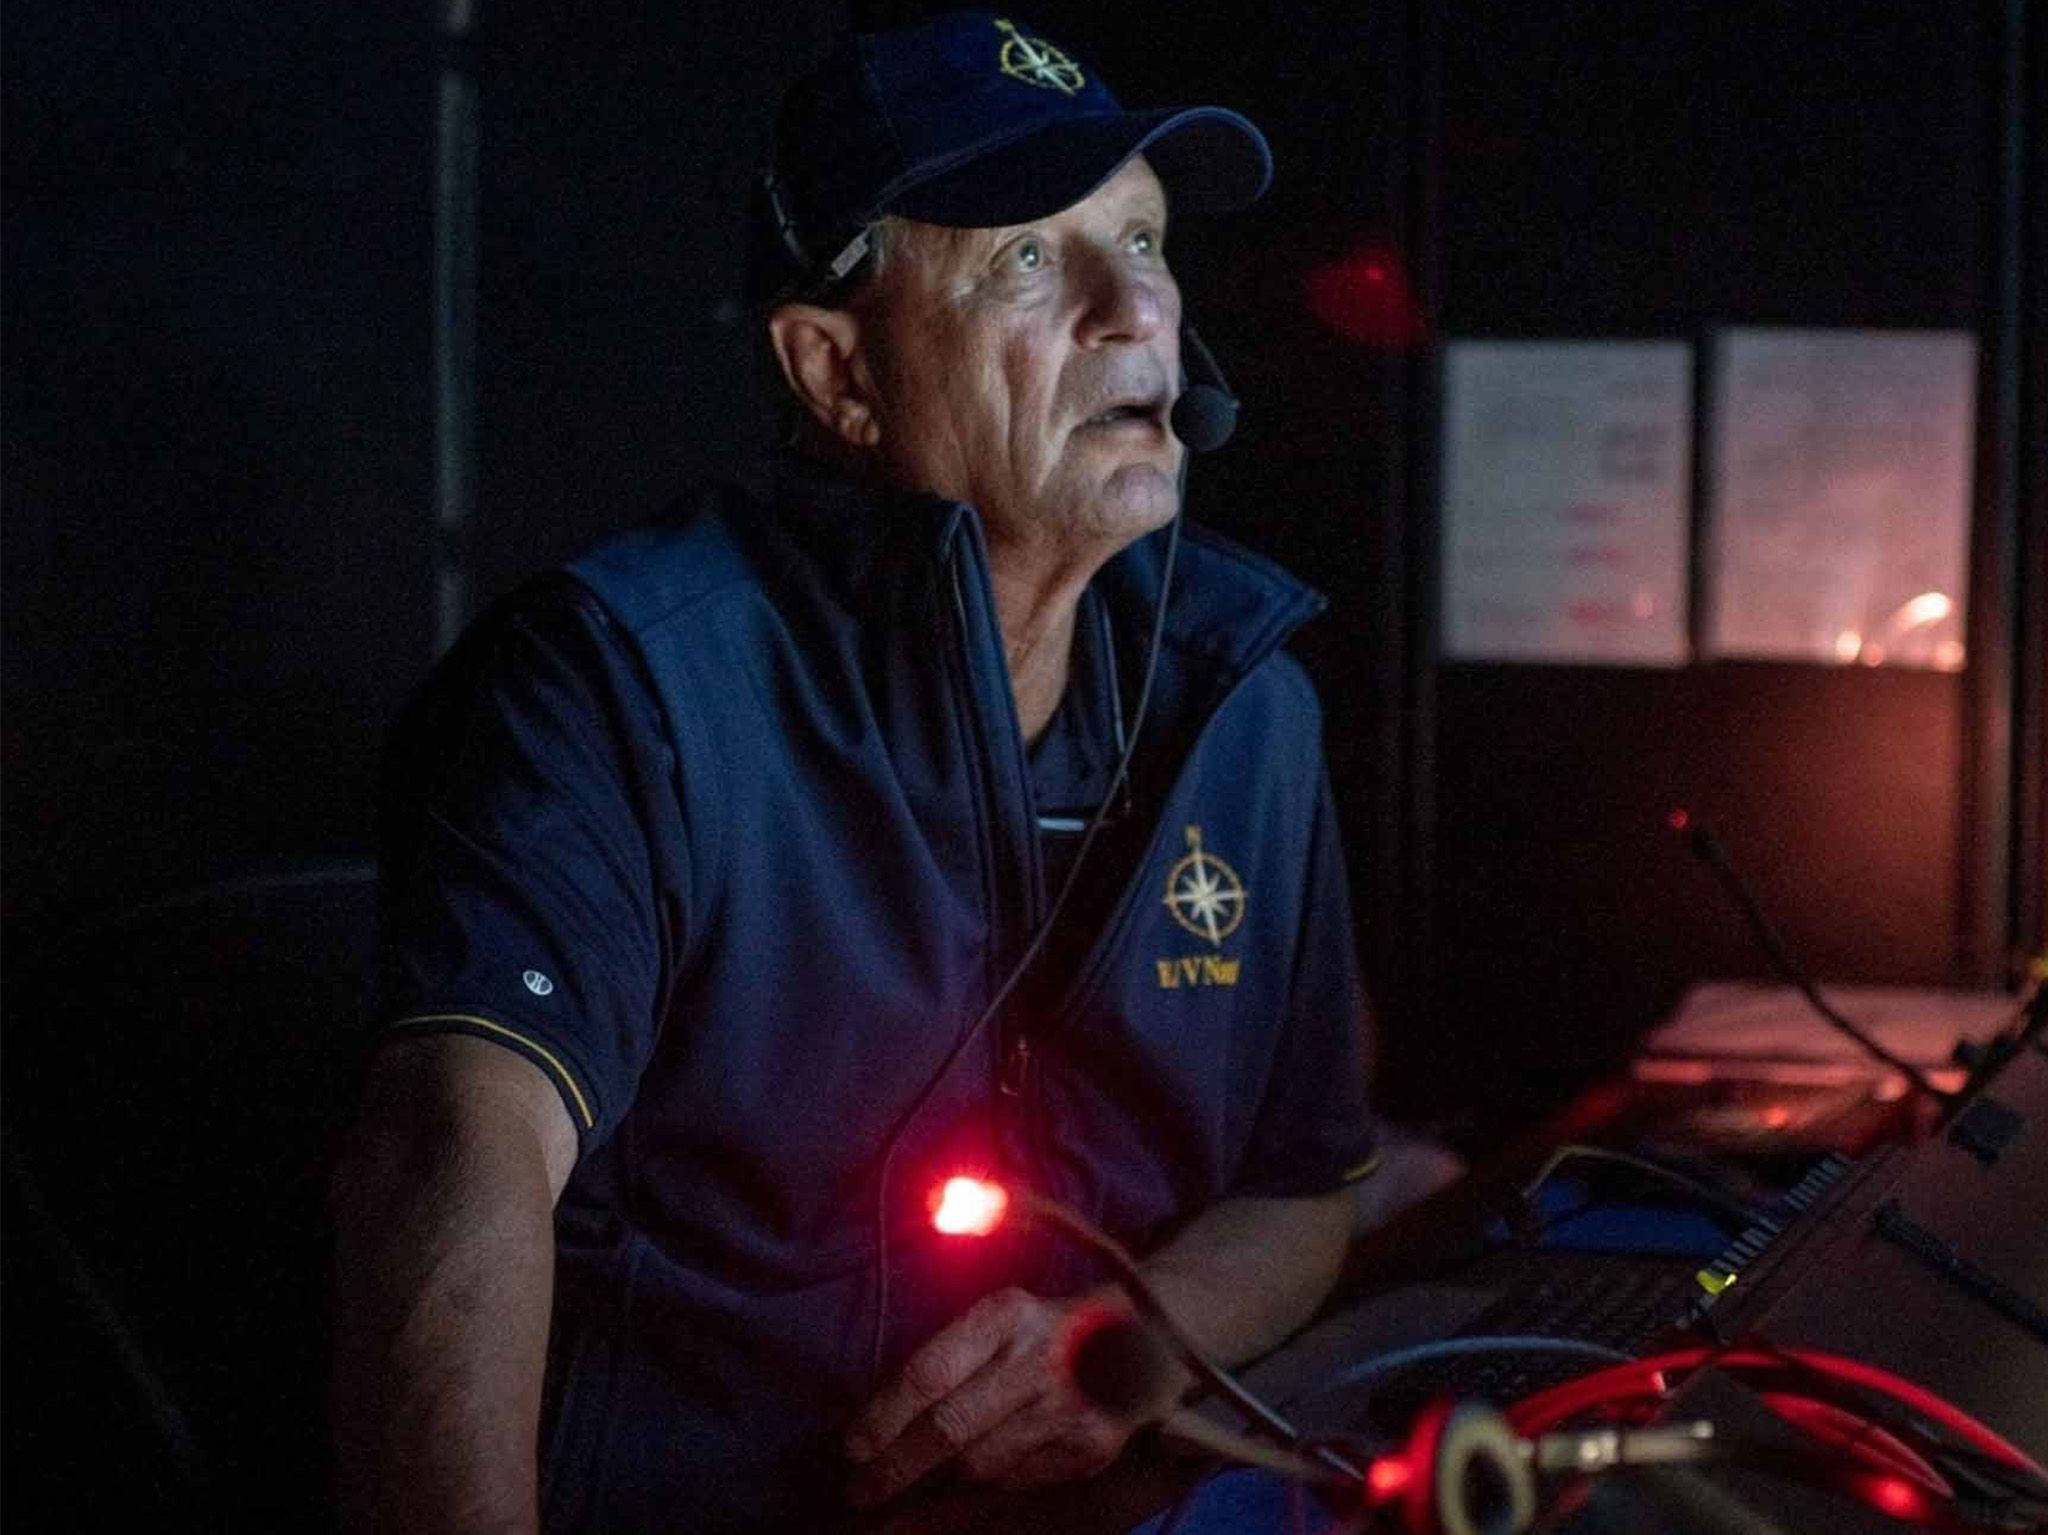 Robert Ballard in control room of the E/V Nautilus while on expedition in the South Pacific.... [Photo of the day - July 2021]